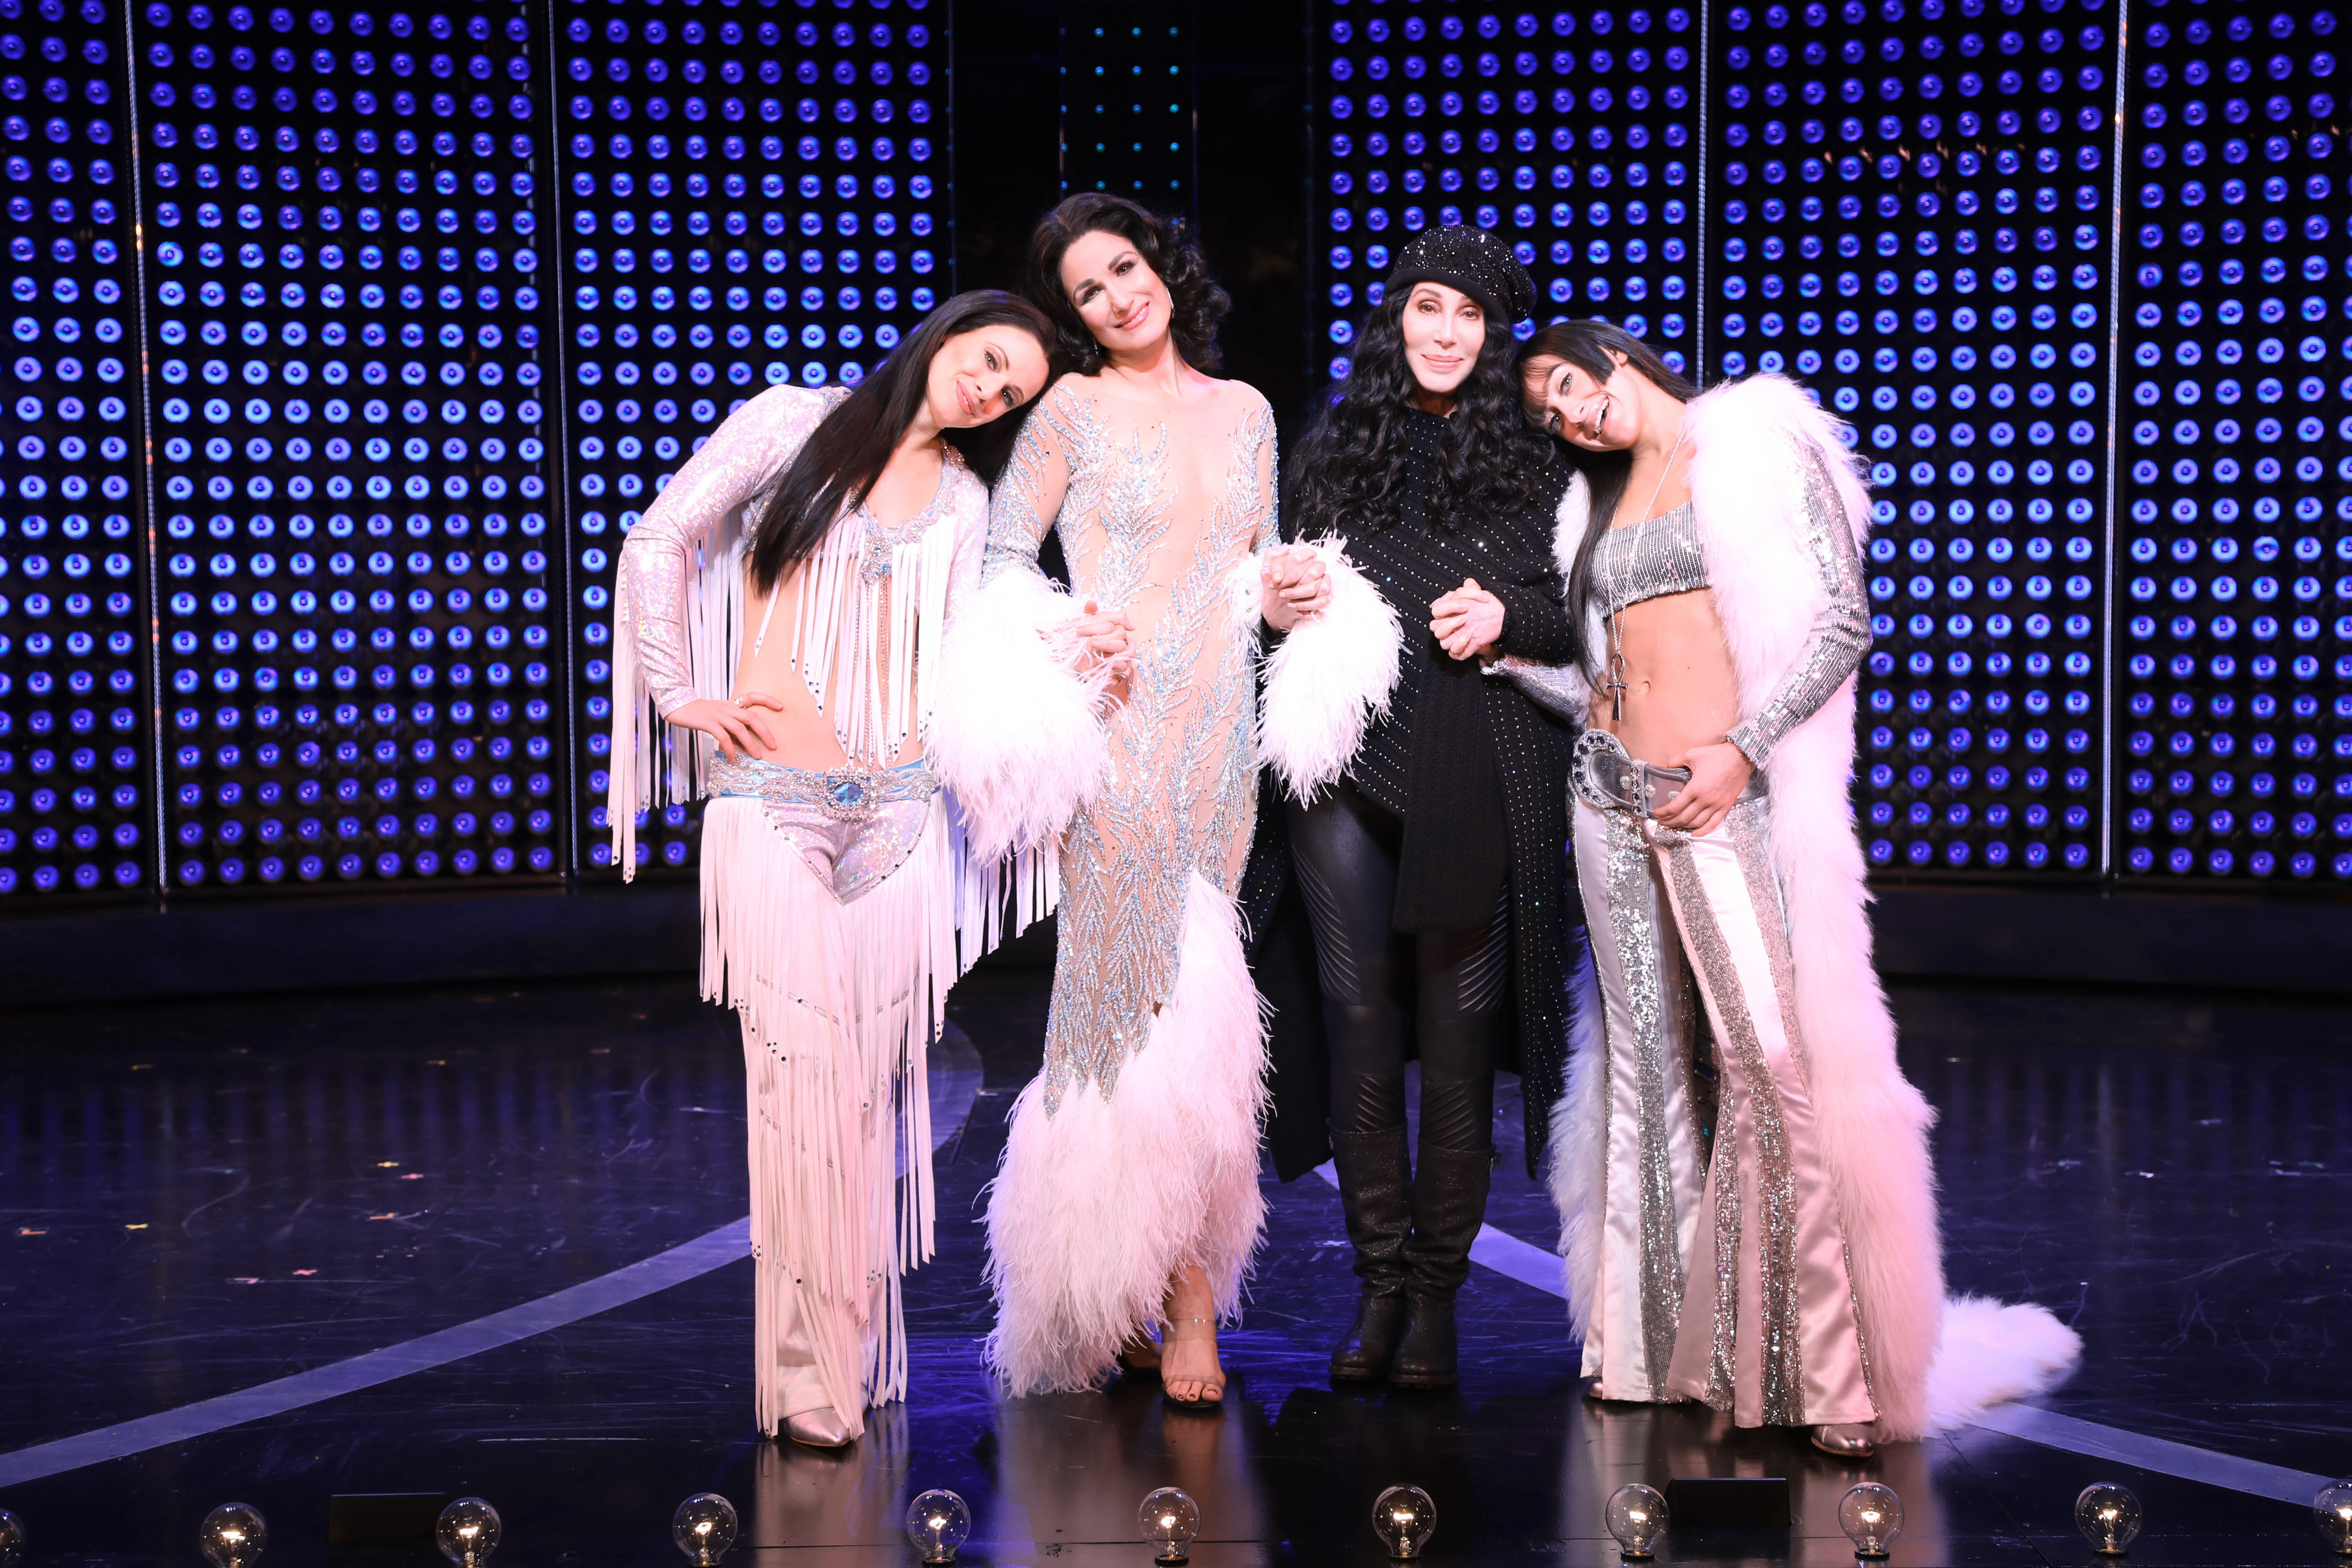 The-Cher-Show-Rob-Kim-Getty-Images.jpg?crop=900:600&width=440